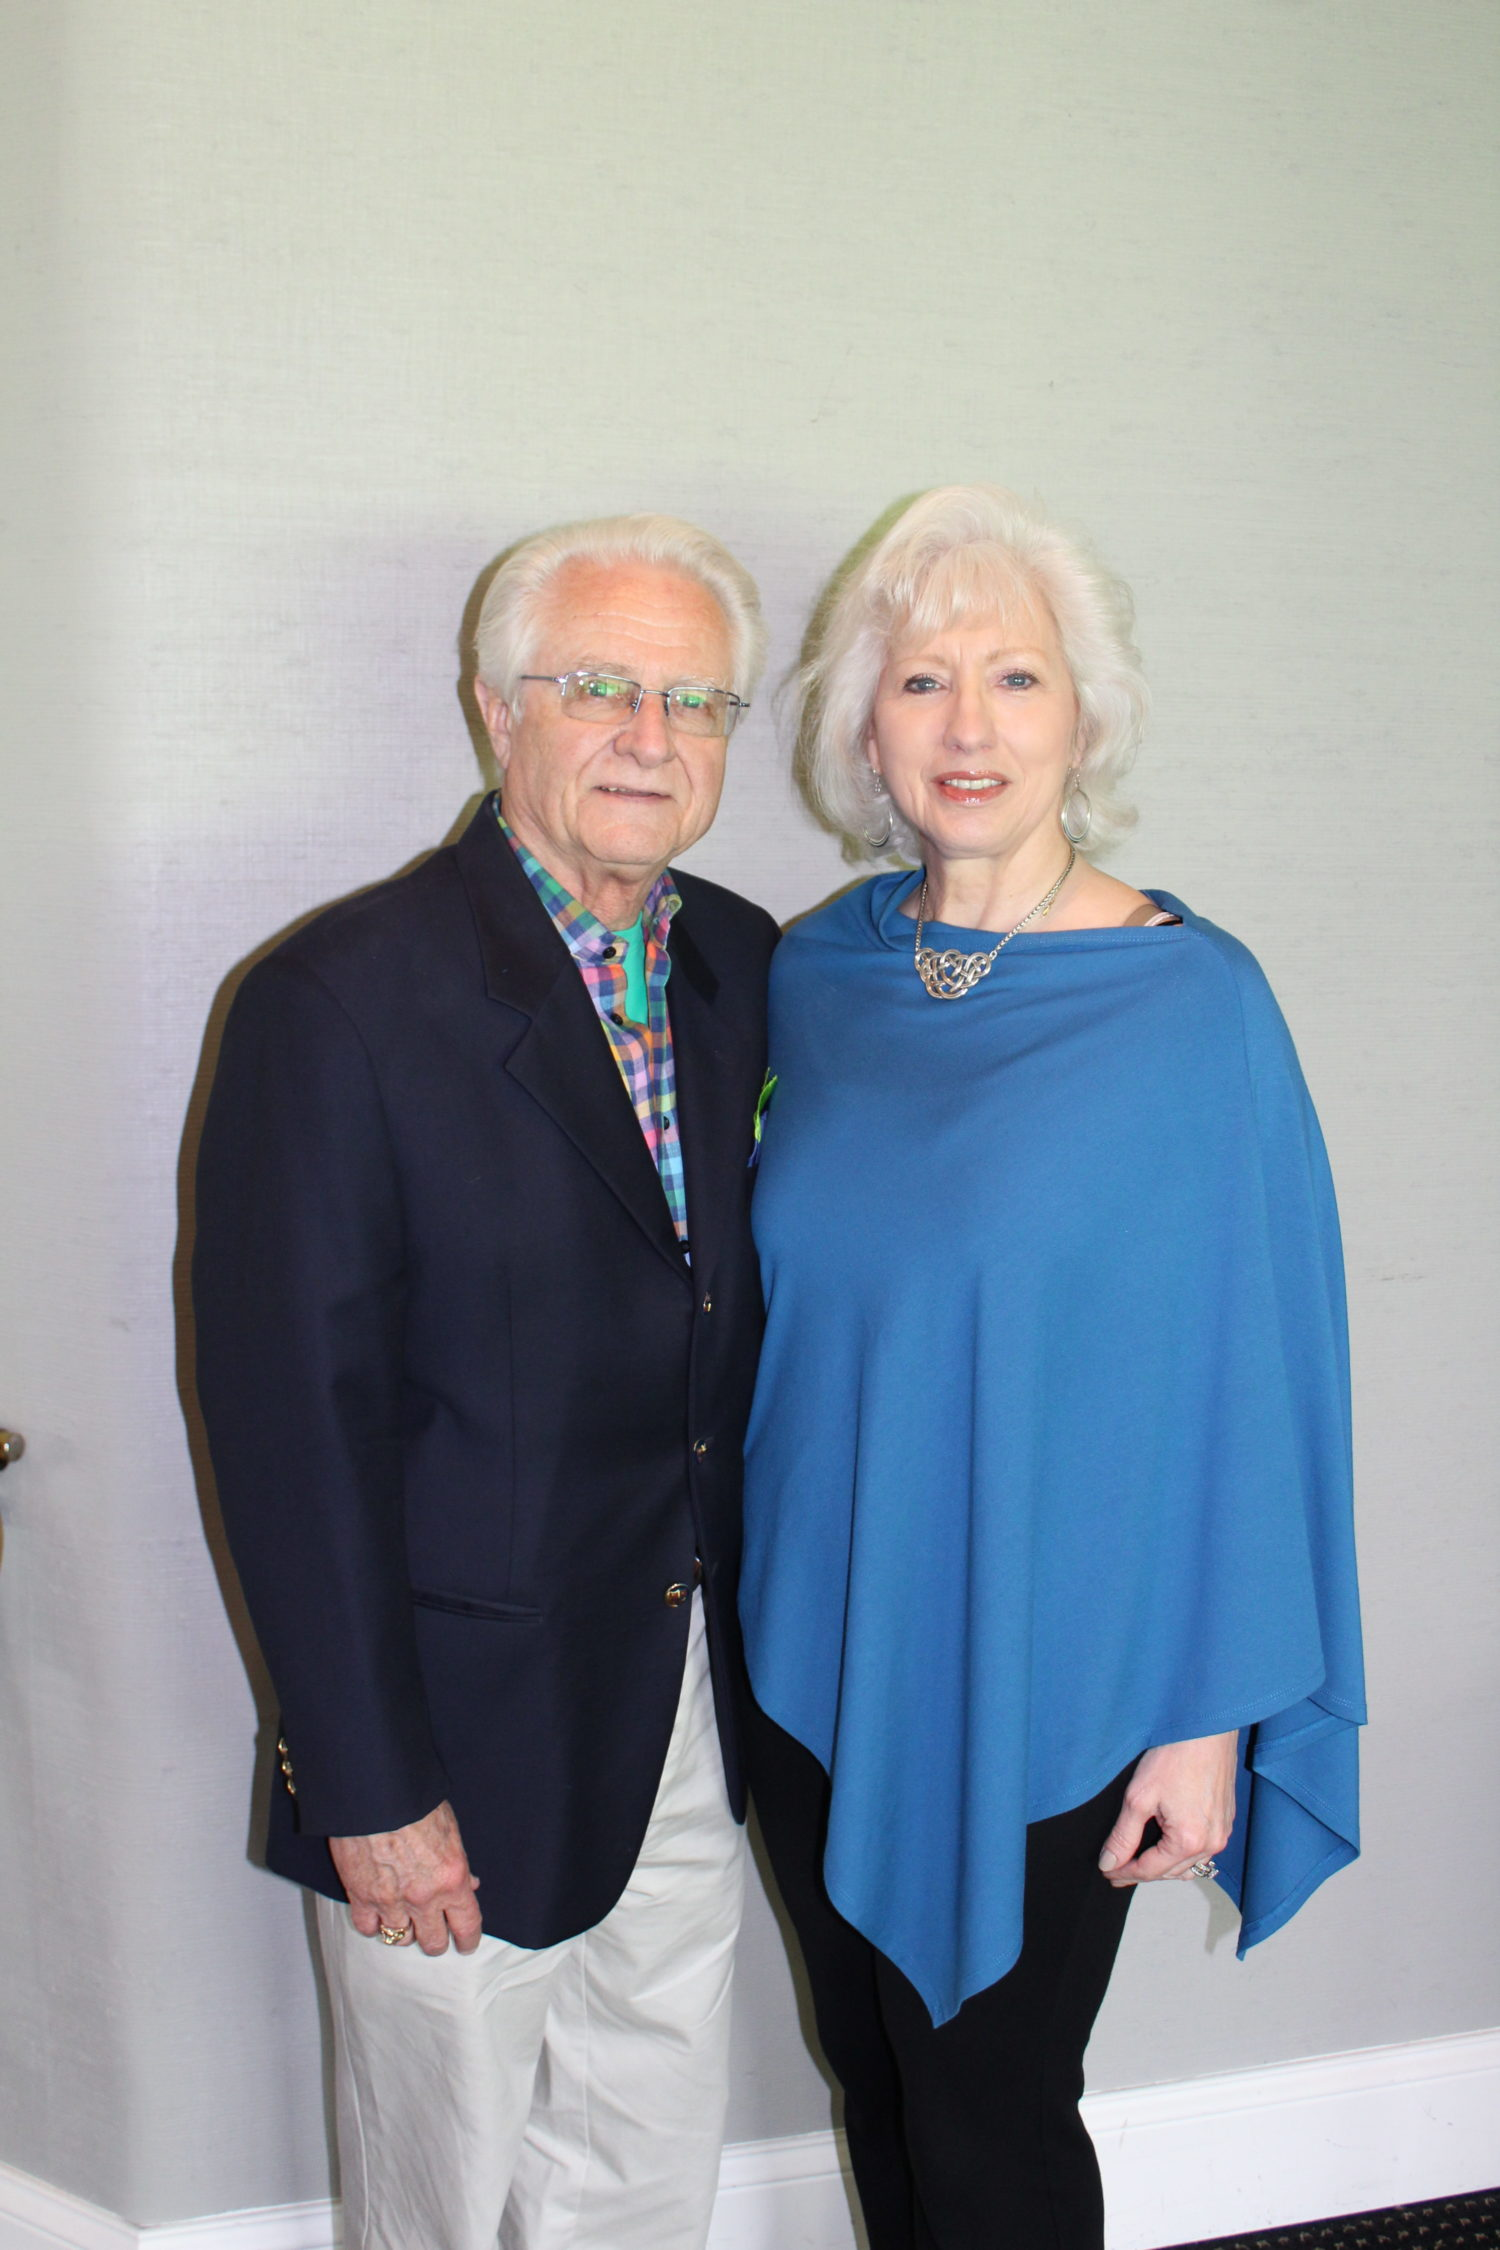 Former SMMC President & CEO Dick Kowalski and Doris Kowalski